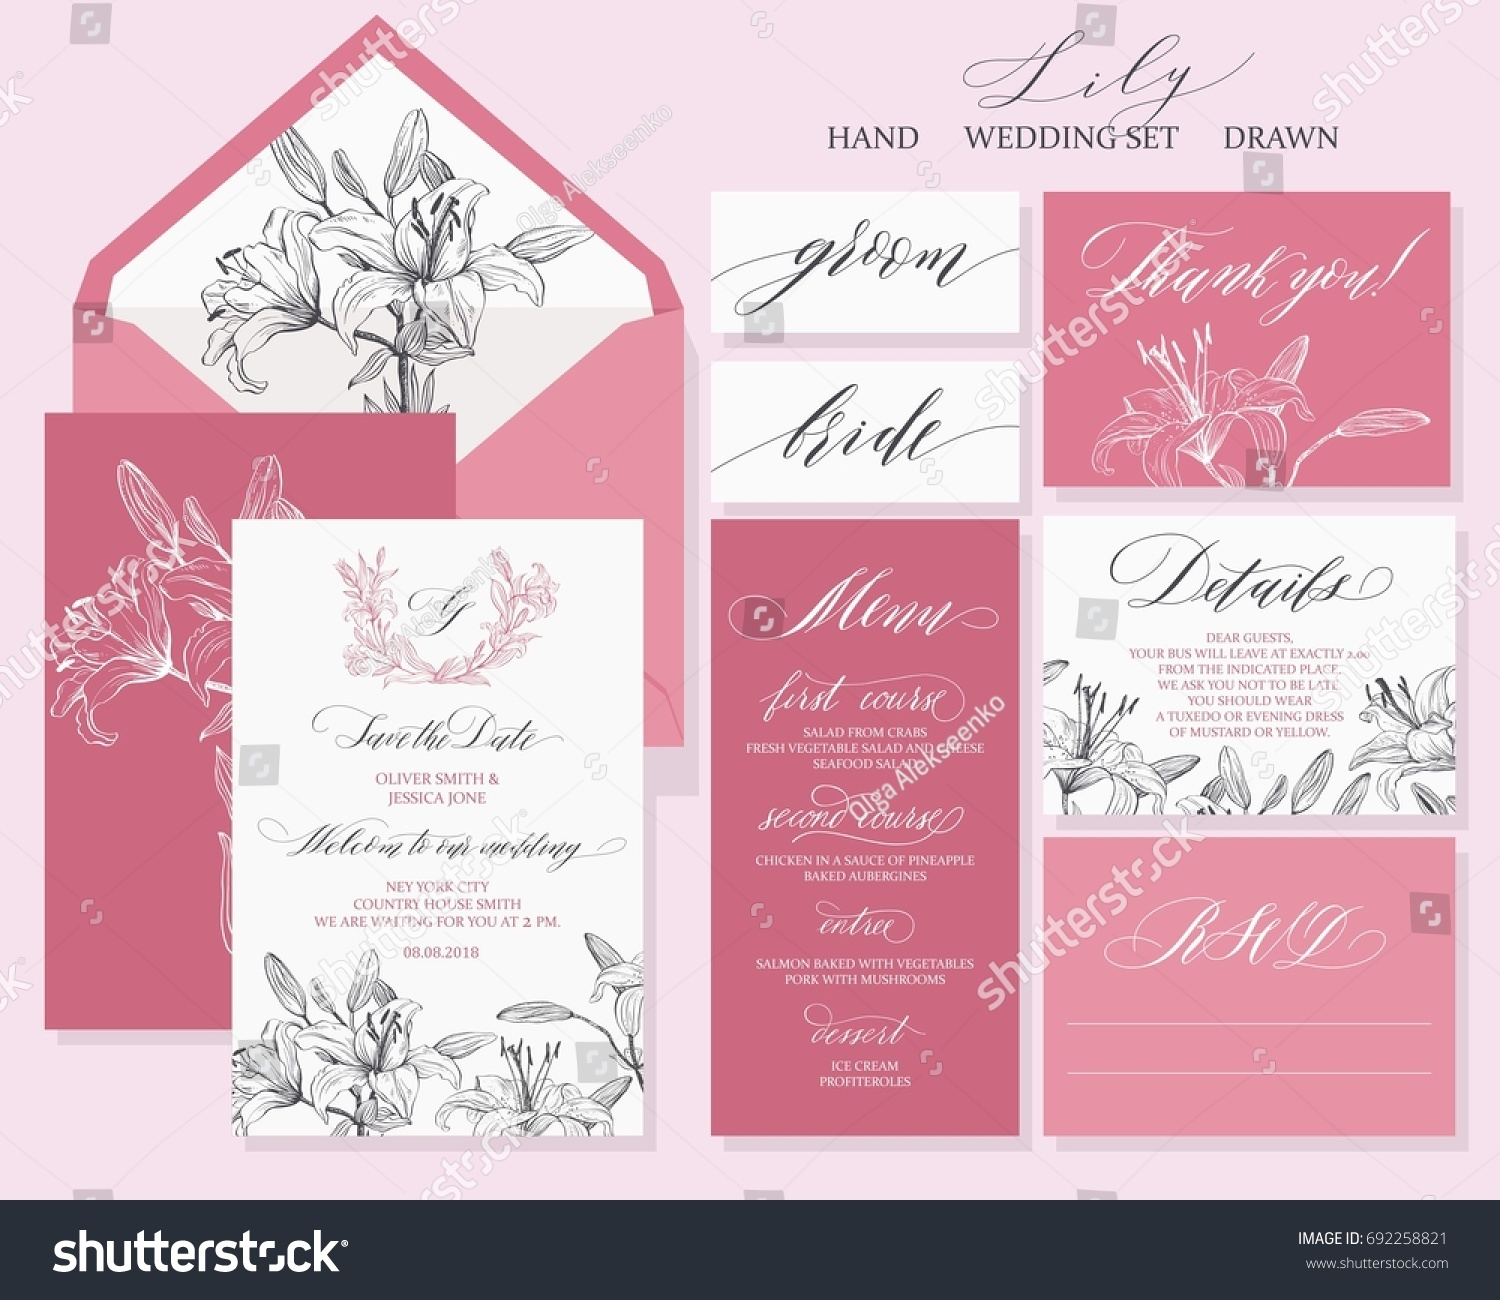 Template Rustic Wedding Invitations Save Date Stock Vector ...